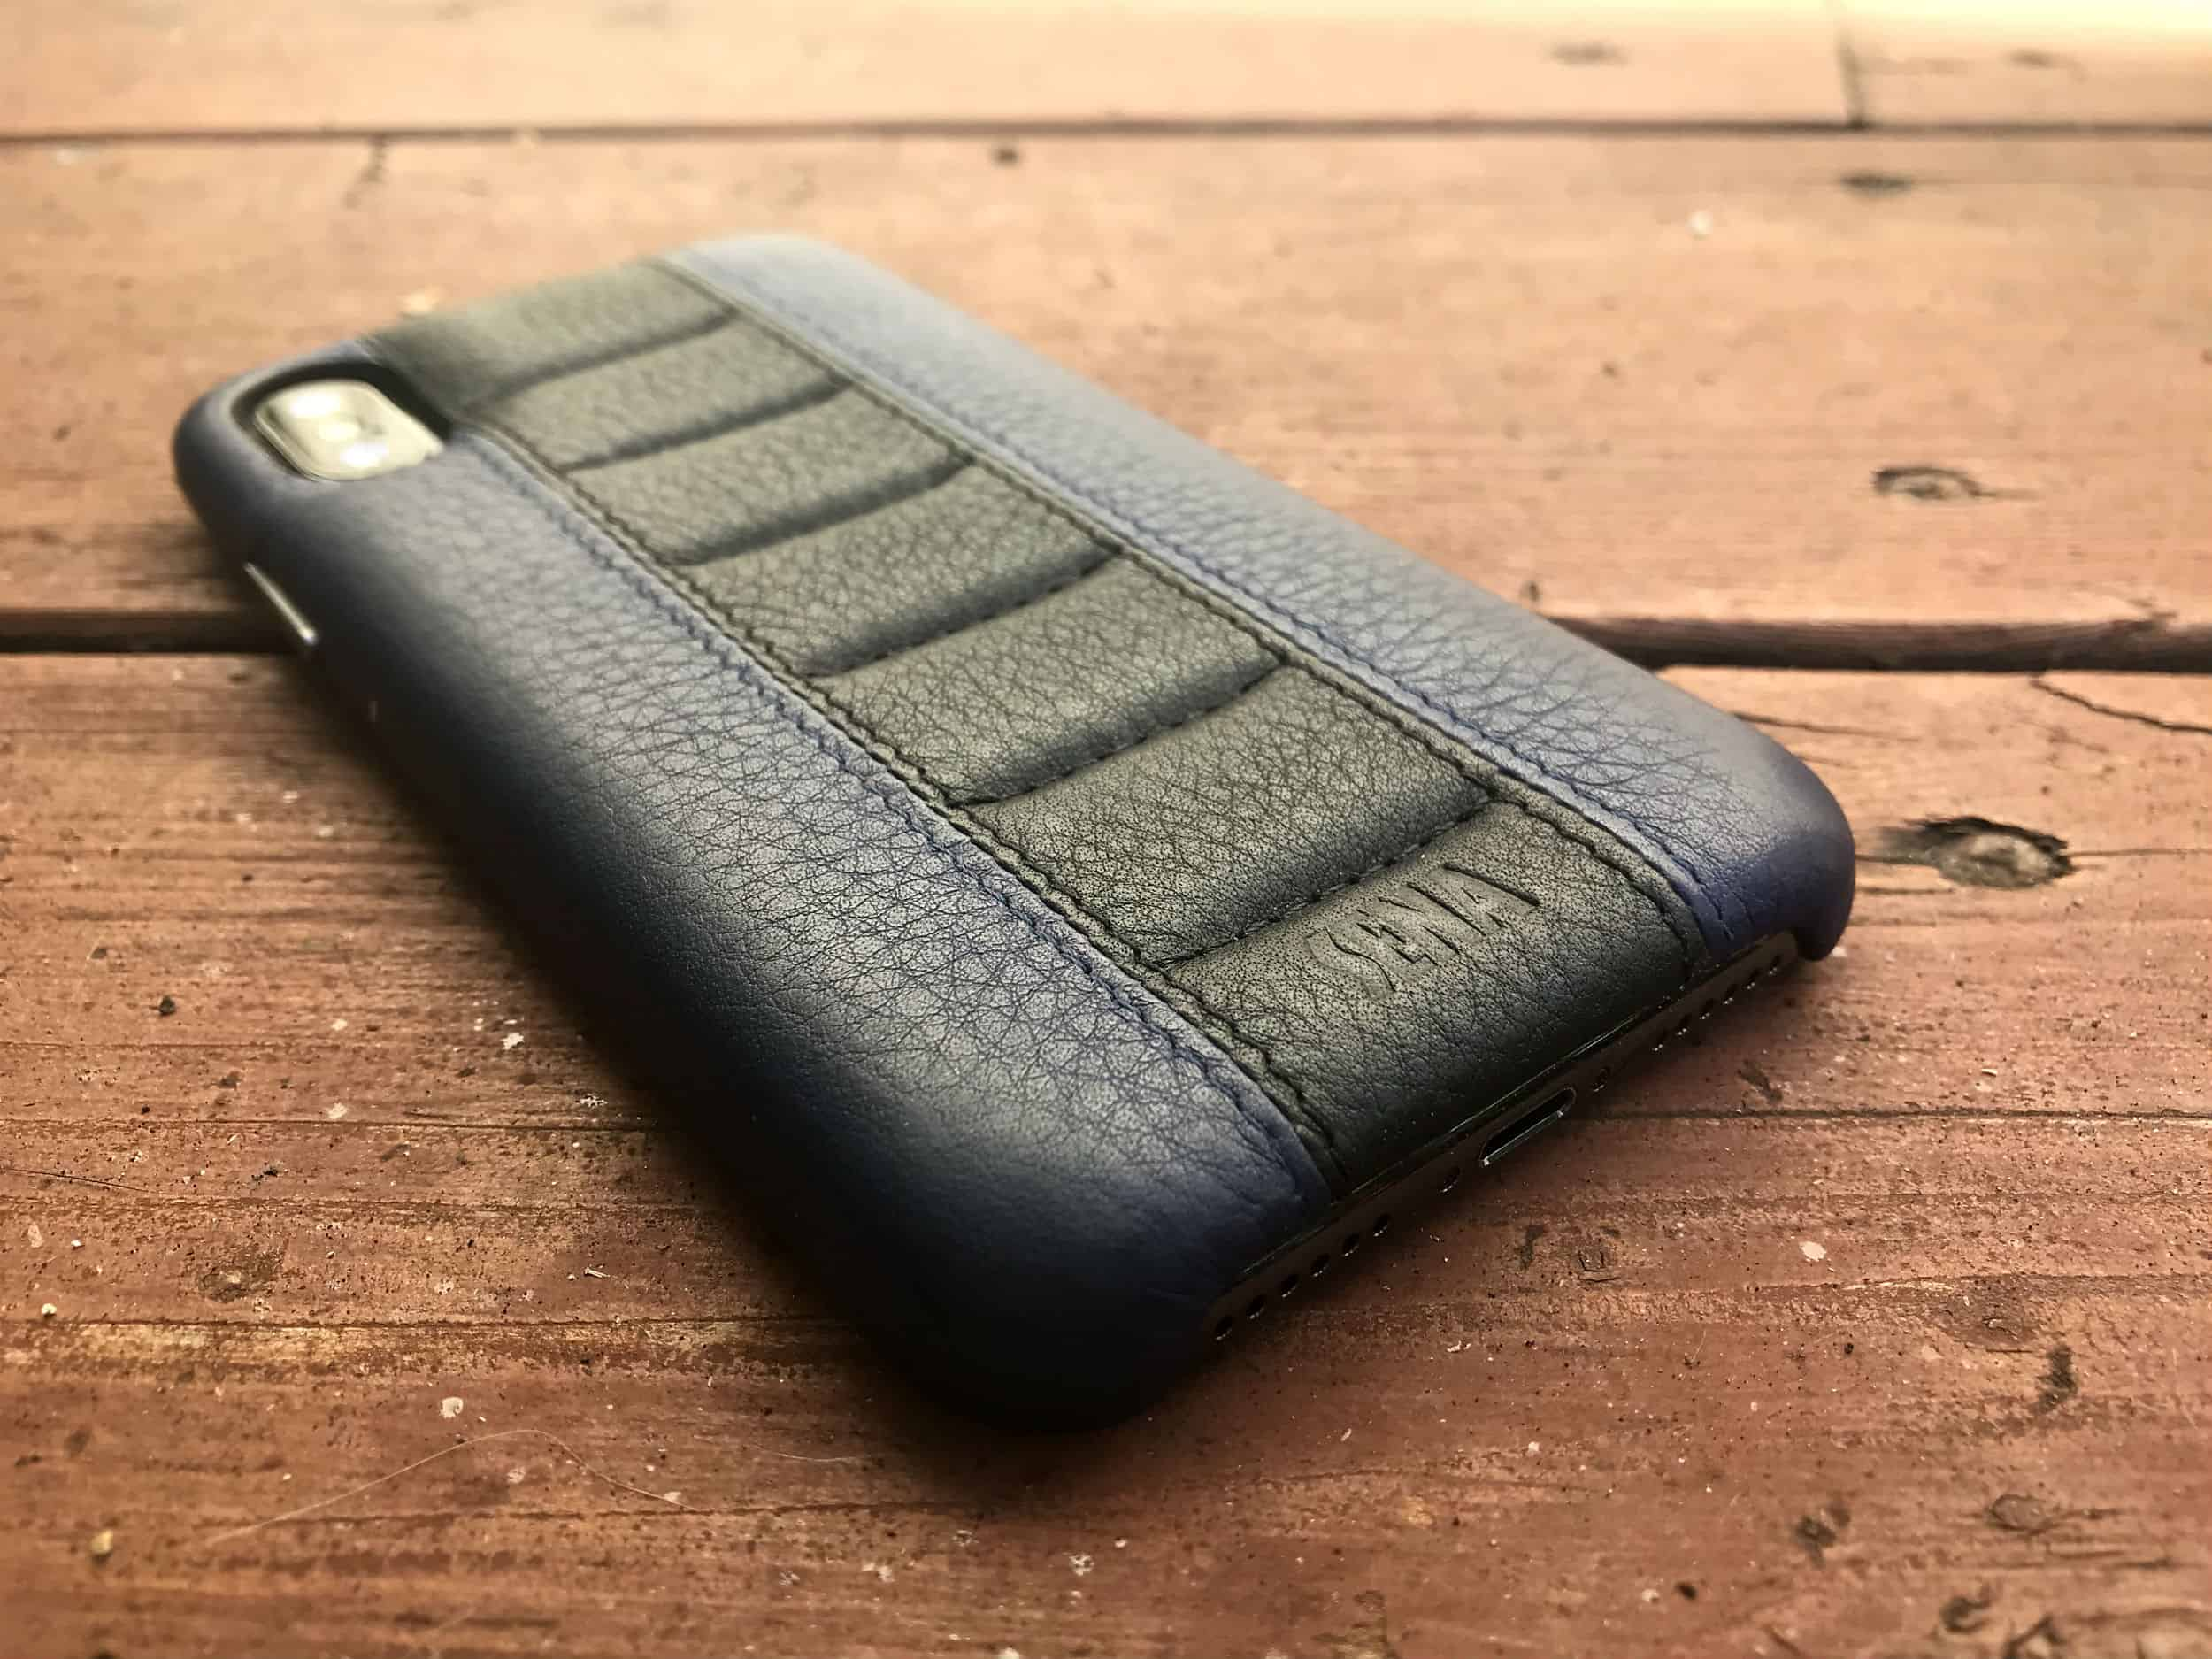 Sena Racer review: An iPhone X case with a vintage rock 'n' roll and hot rod vibe.